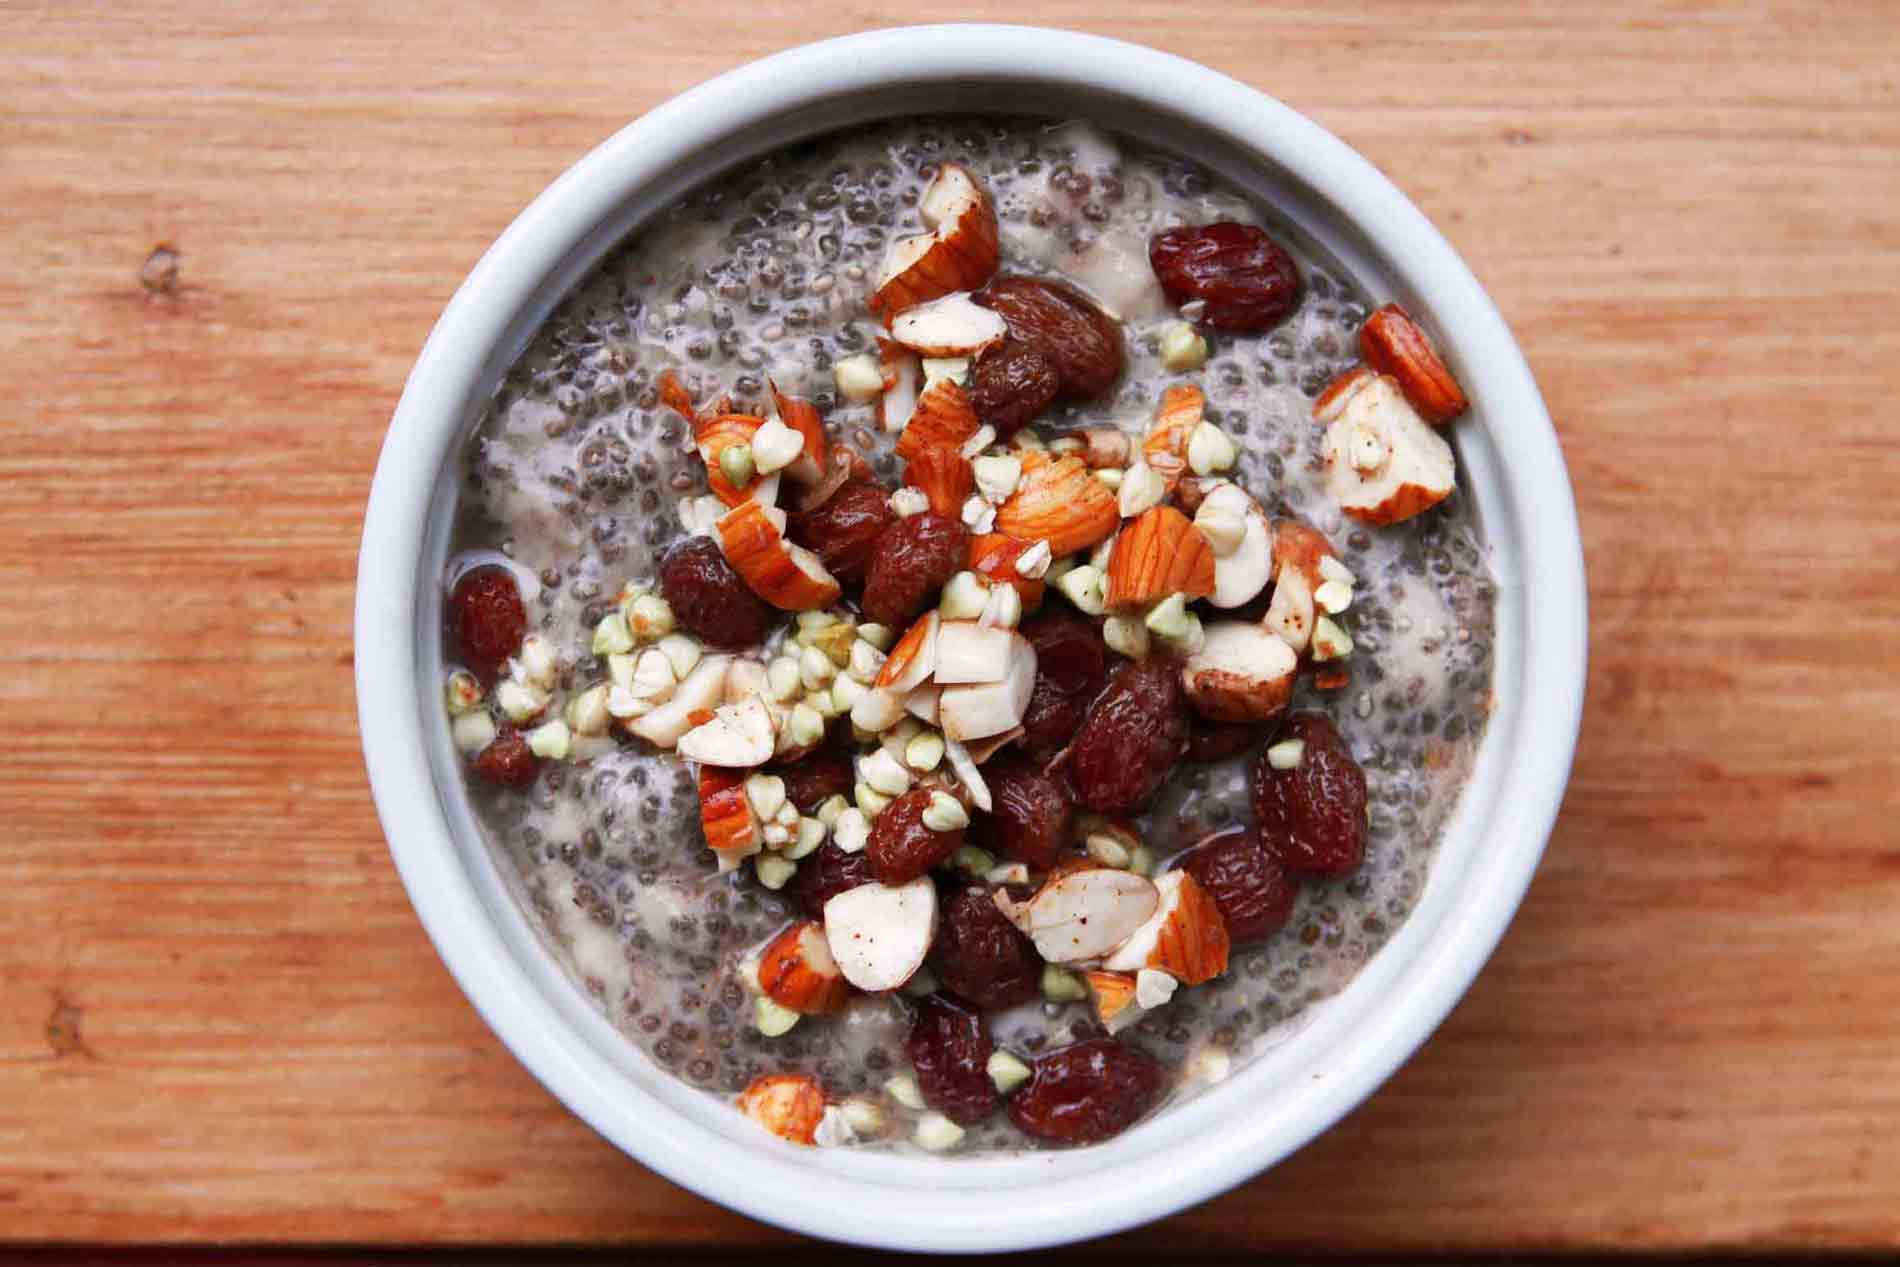 Chia Seed Breakfast Recipes  Chia Seeds Breakfast Recipe That is Good for Overall Health